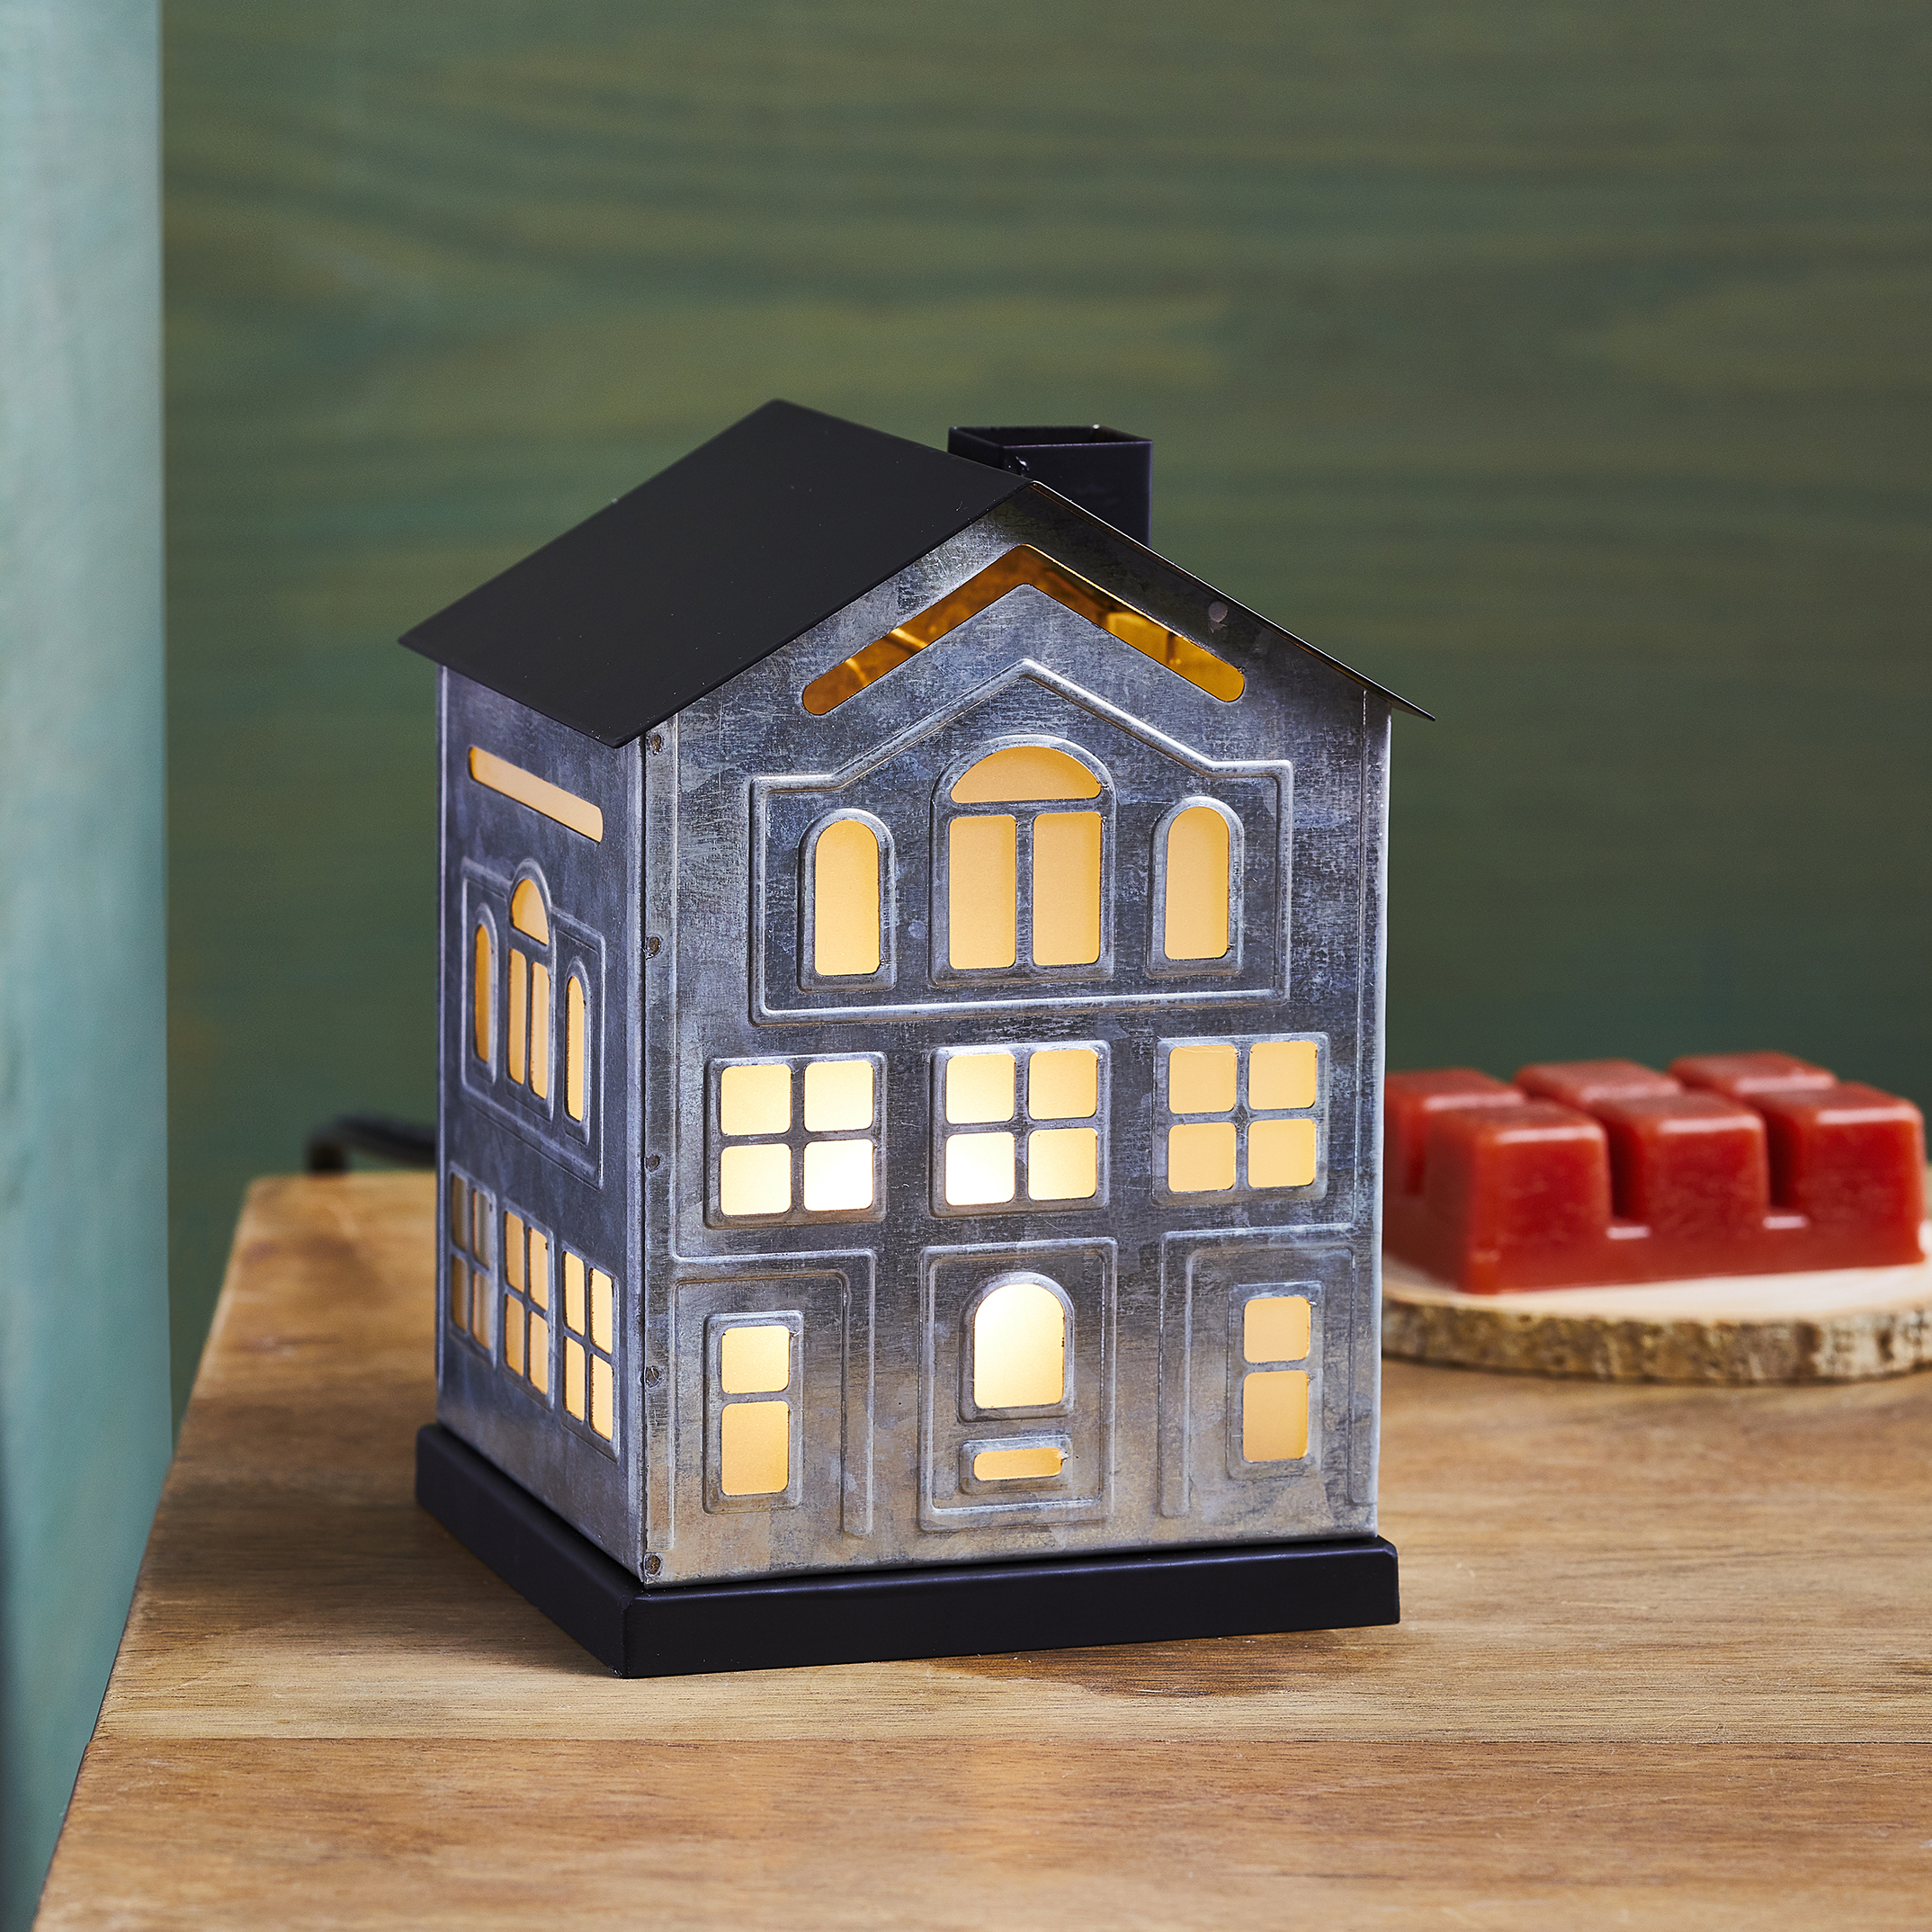 Better Homes & Gardens Galvanized House Full Size Wax Warmer $10 + Free Store Pickup at Walmart